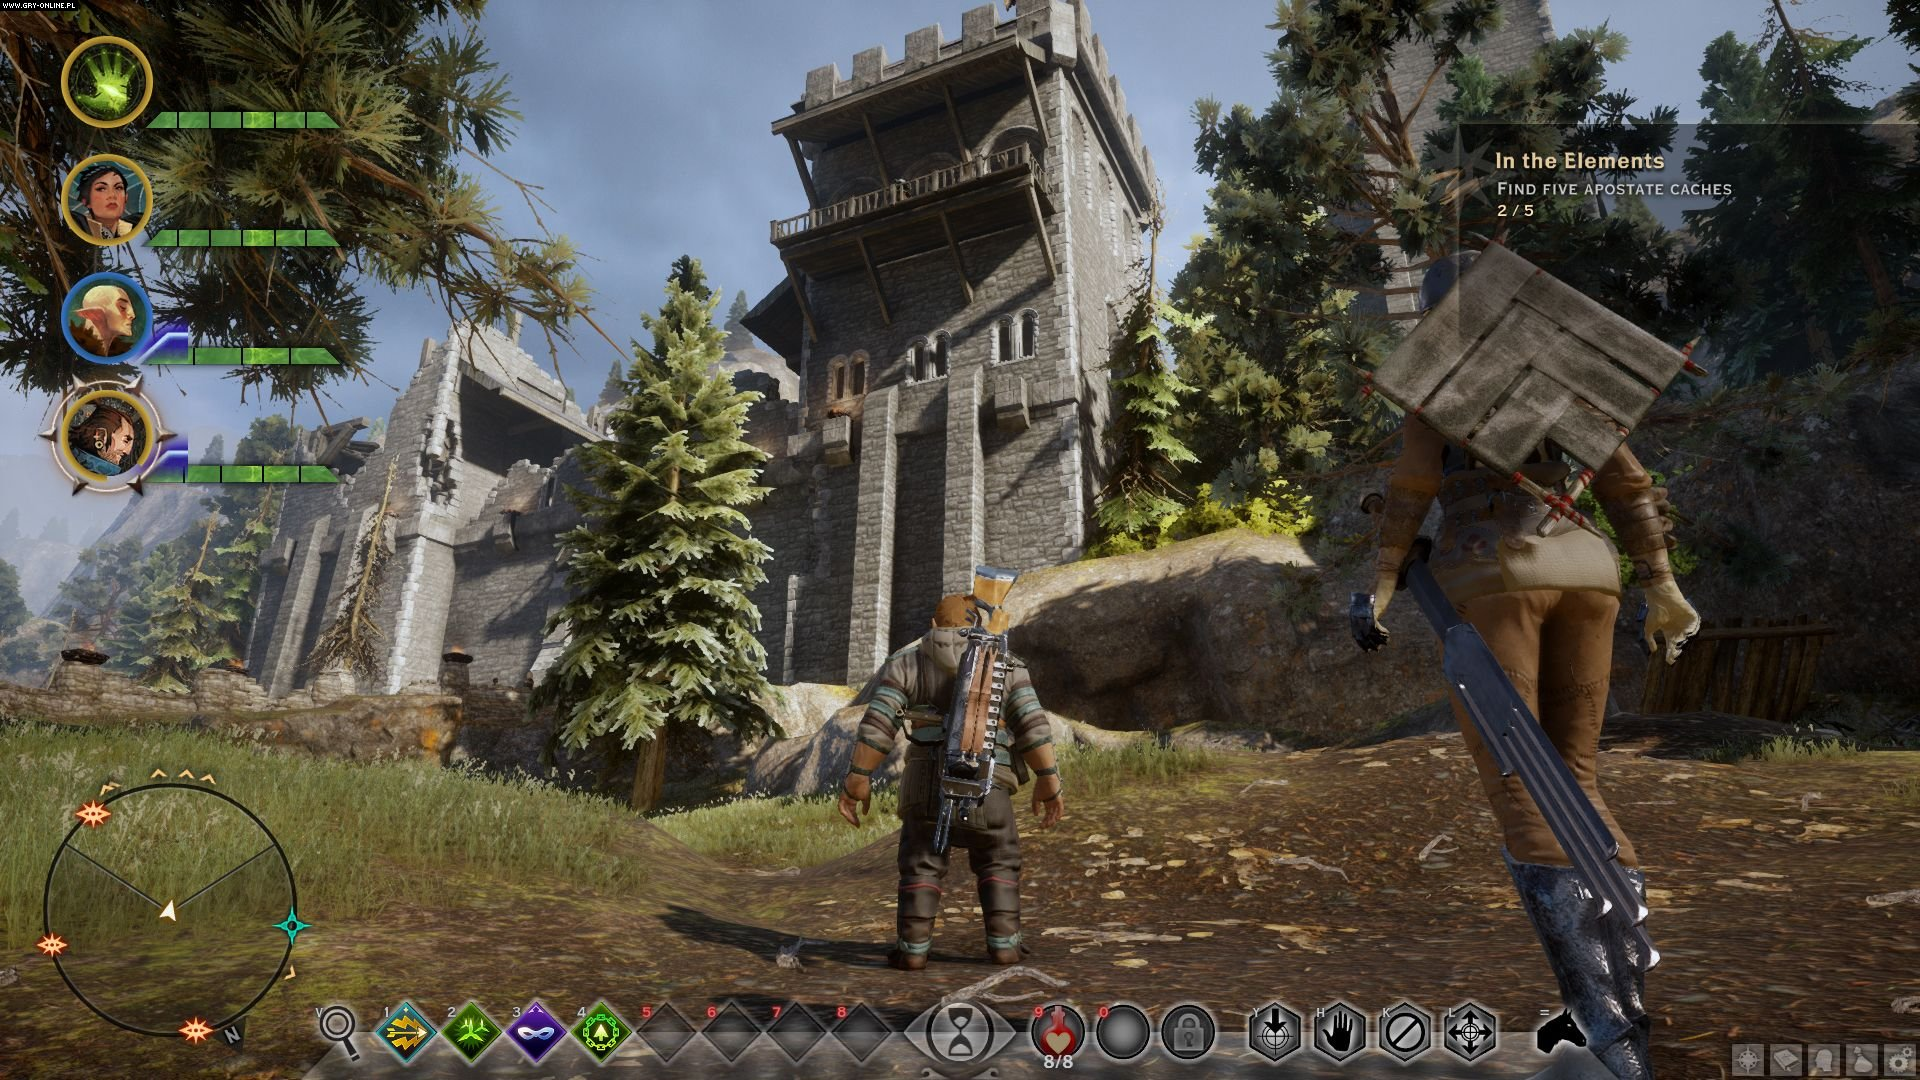 Dragon Age: Inkwizycja PC, X360, PS3 Gry Screen 1/225, BioWare Corporation, Electronic Arts Inc.